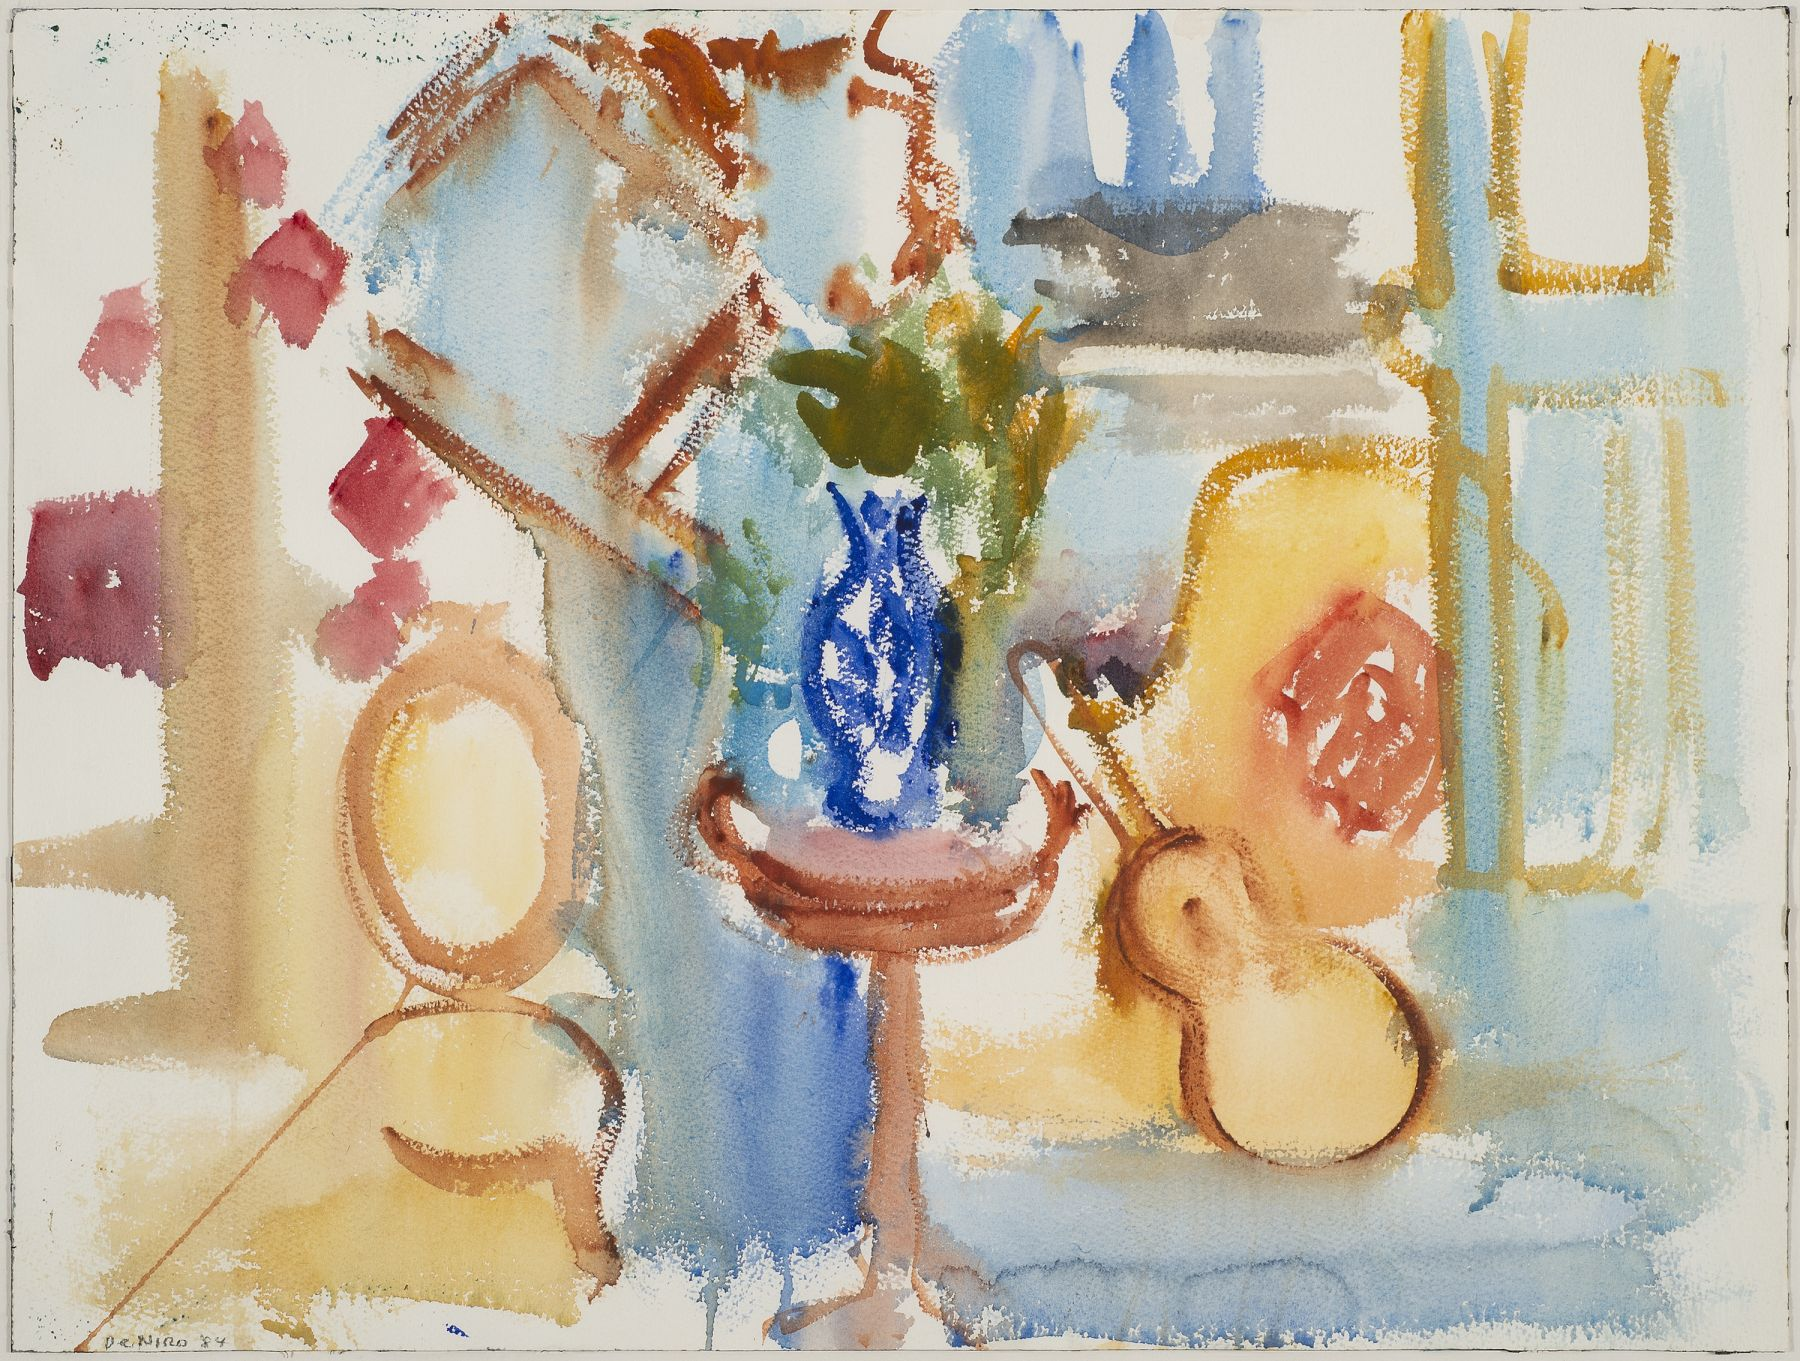 Untitled (Interior Still Life with Guitar), 1984